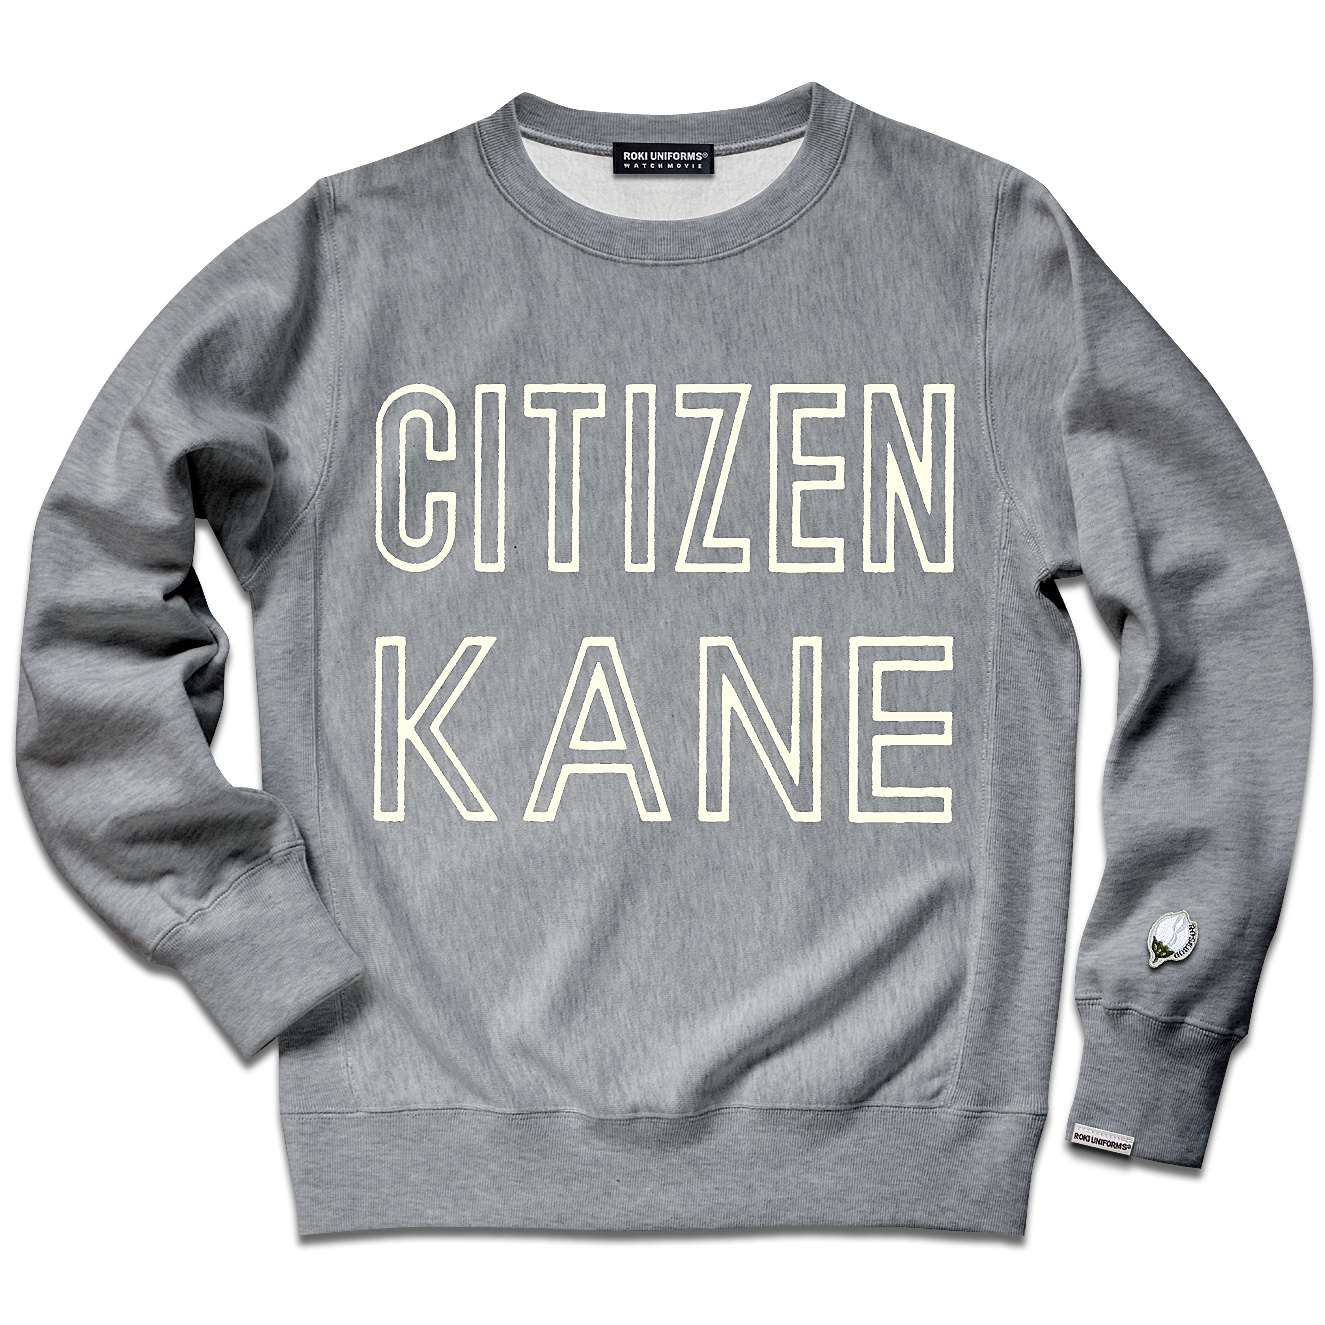 CITIZEN KANE SWEAT SHIRTSa